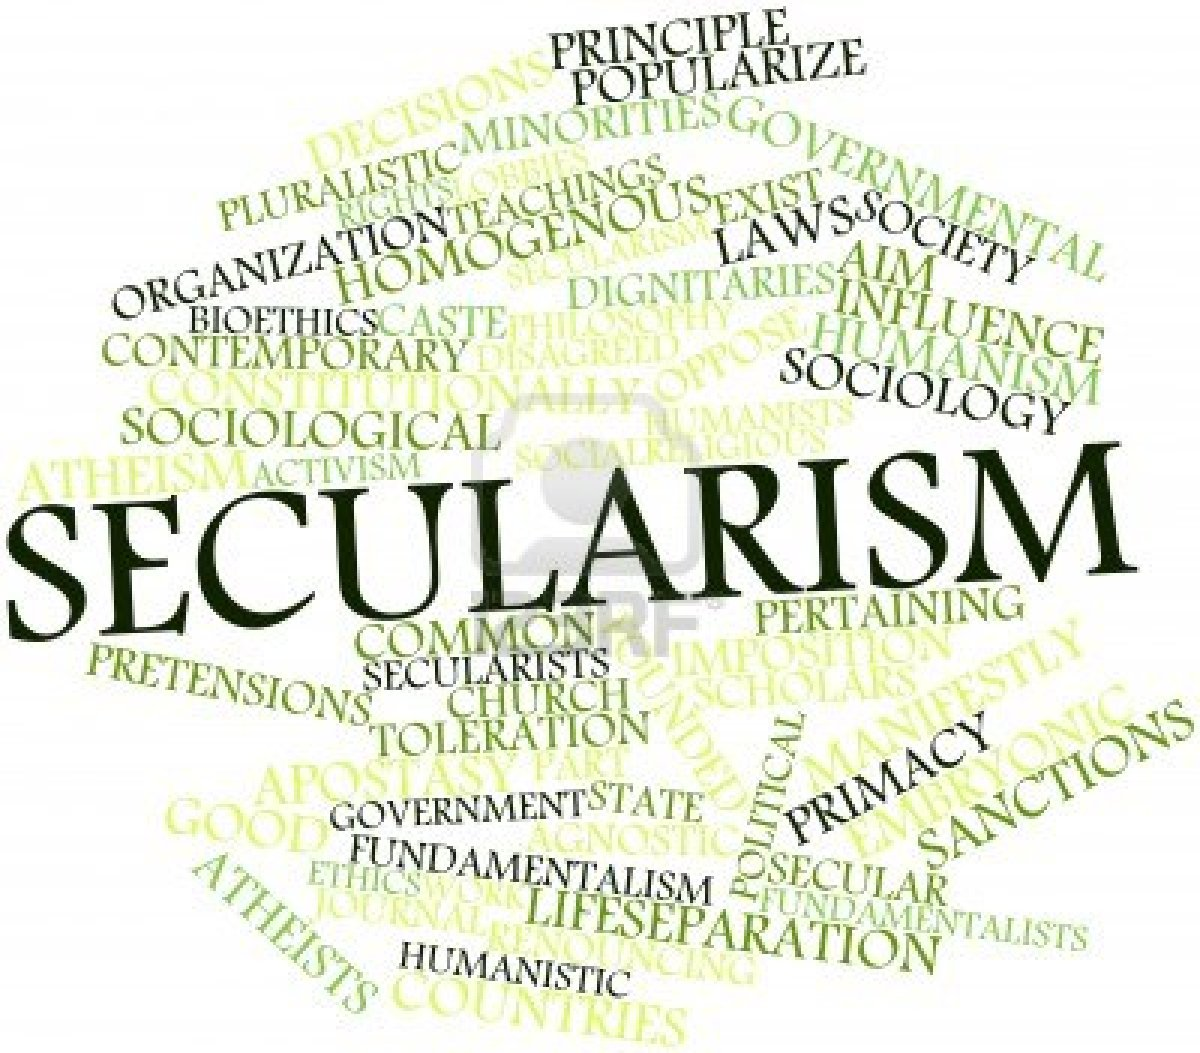 secularism asserts the right to be I agree with holyoake, secularism is not anti-religion it is an alternative to religion that asserts the right of all to believe and think as we wish, including the rejection or acceptance of religion and secularism.